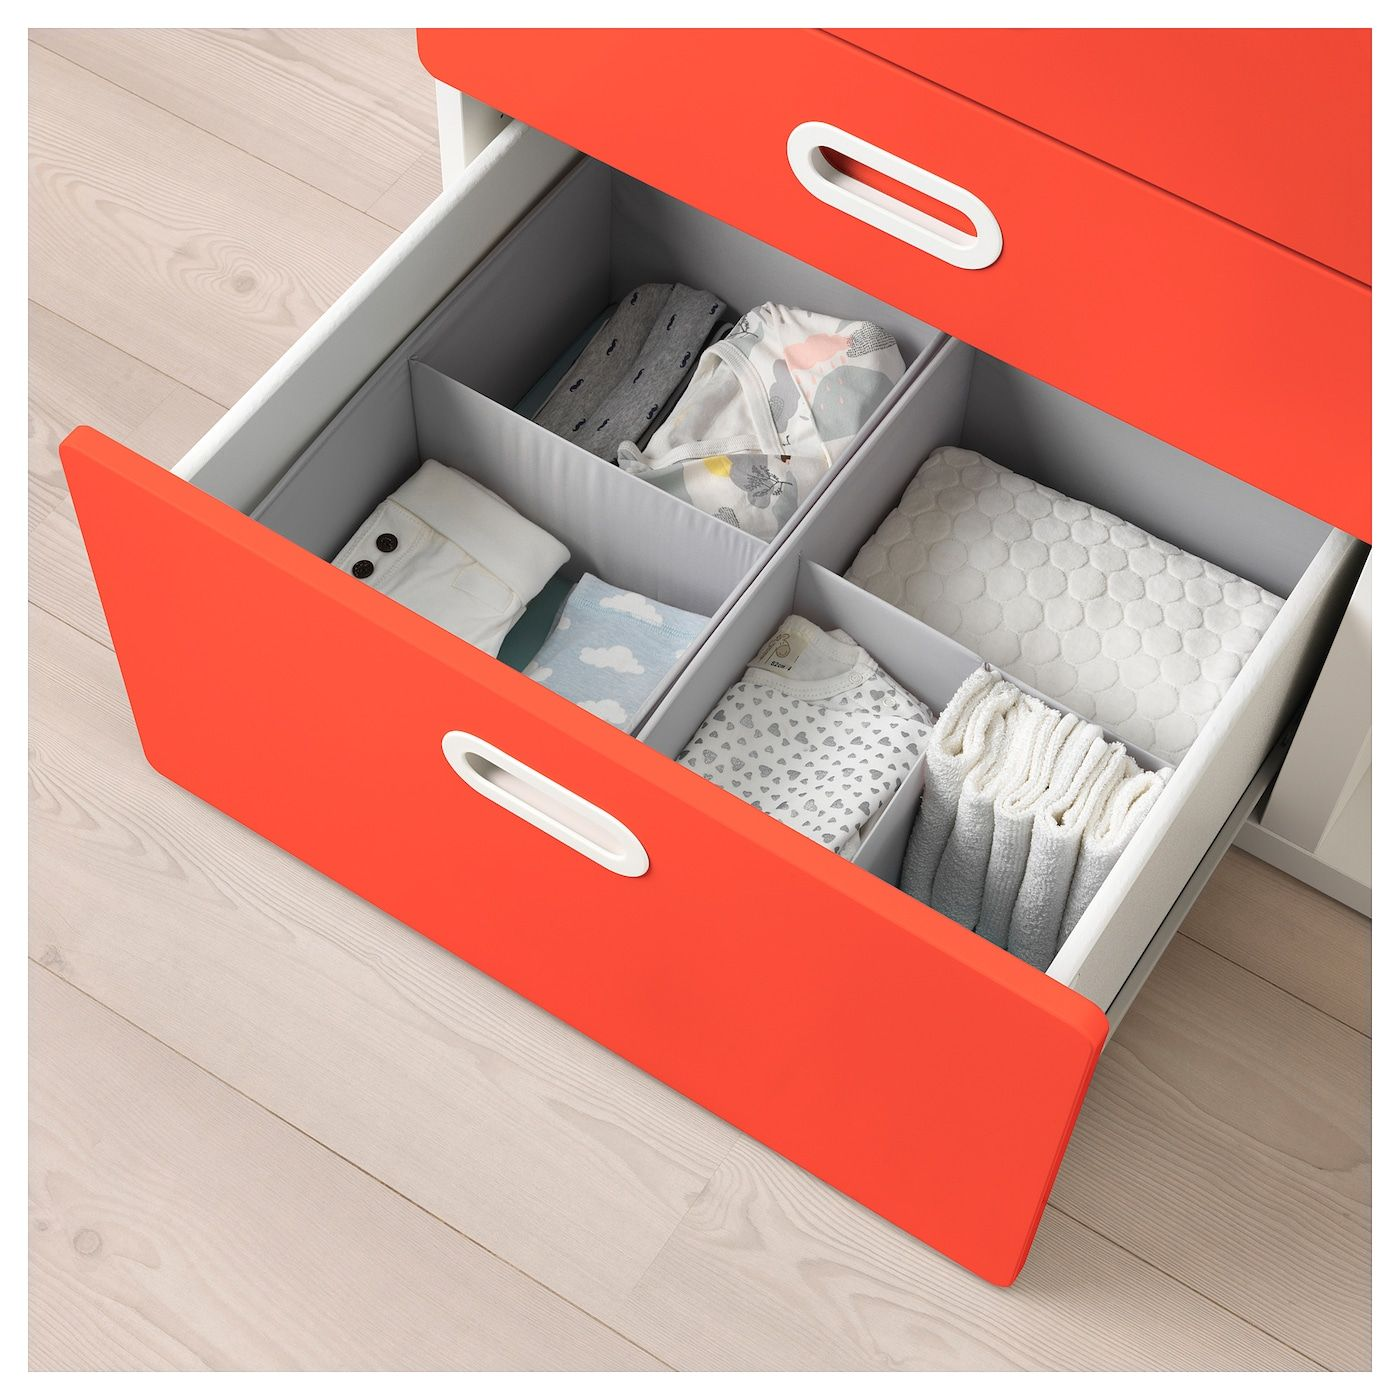 STUVA / FRITIDS Changing table with drawers – white, red – IKEA